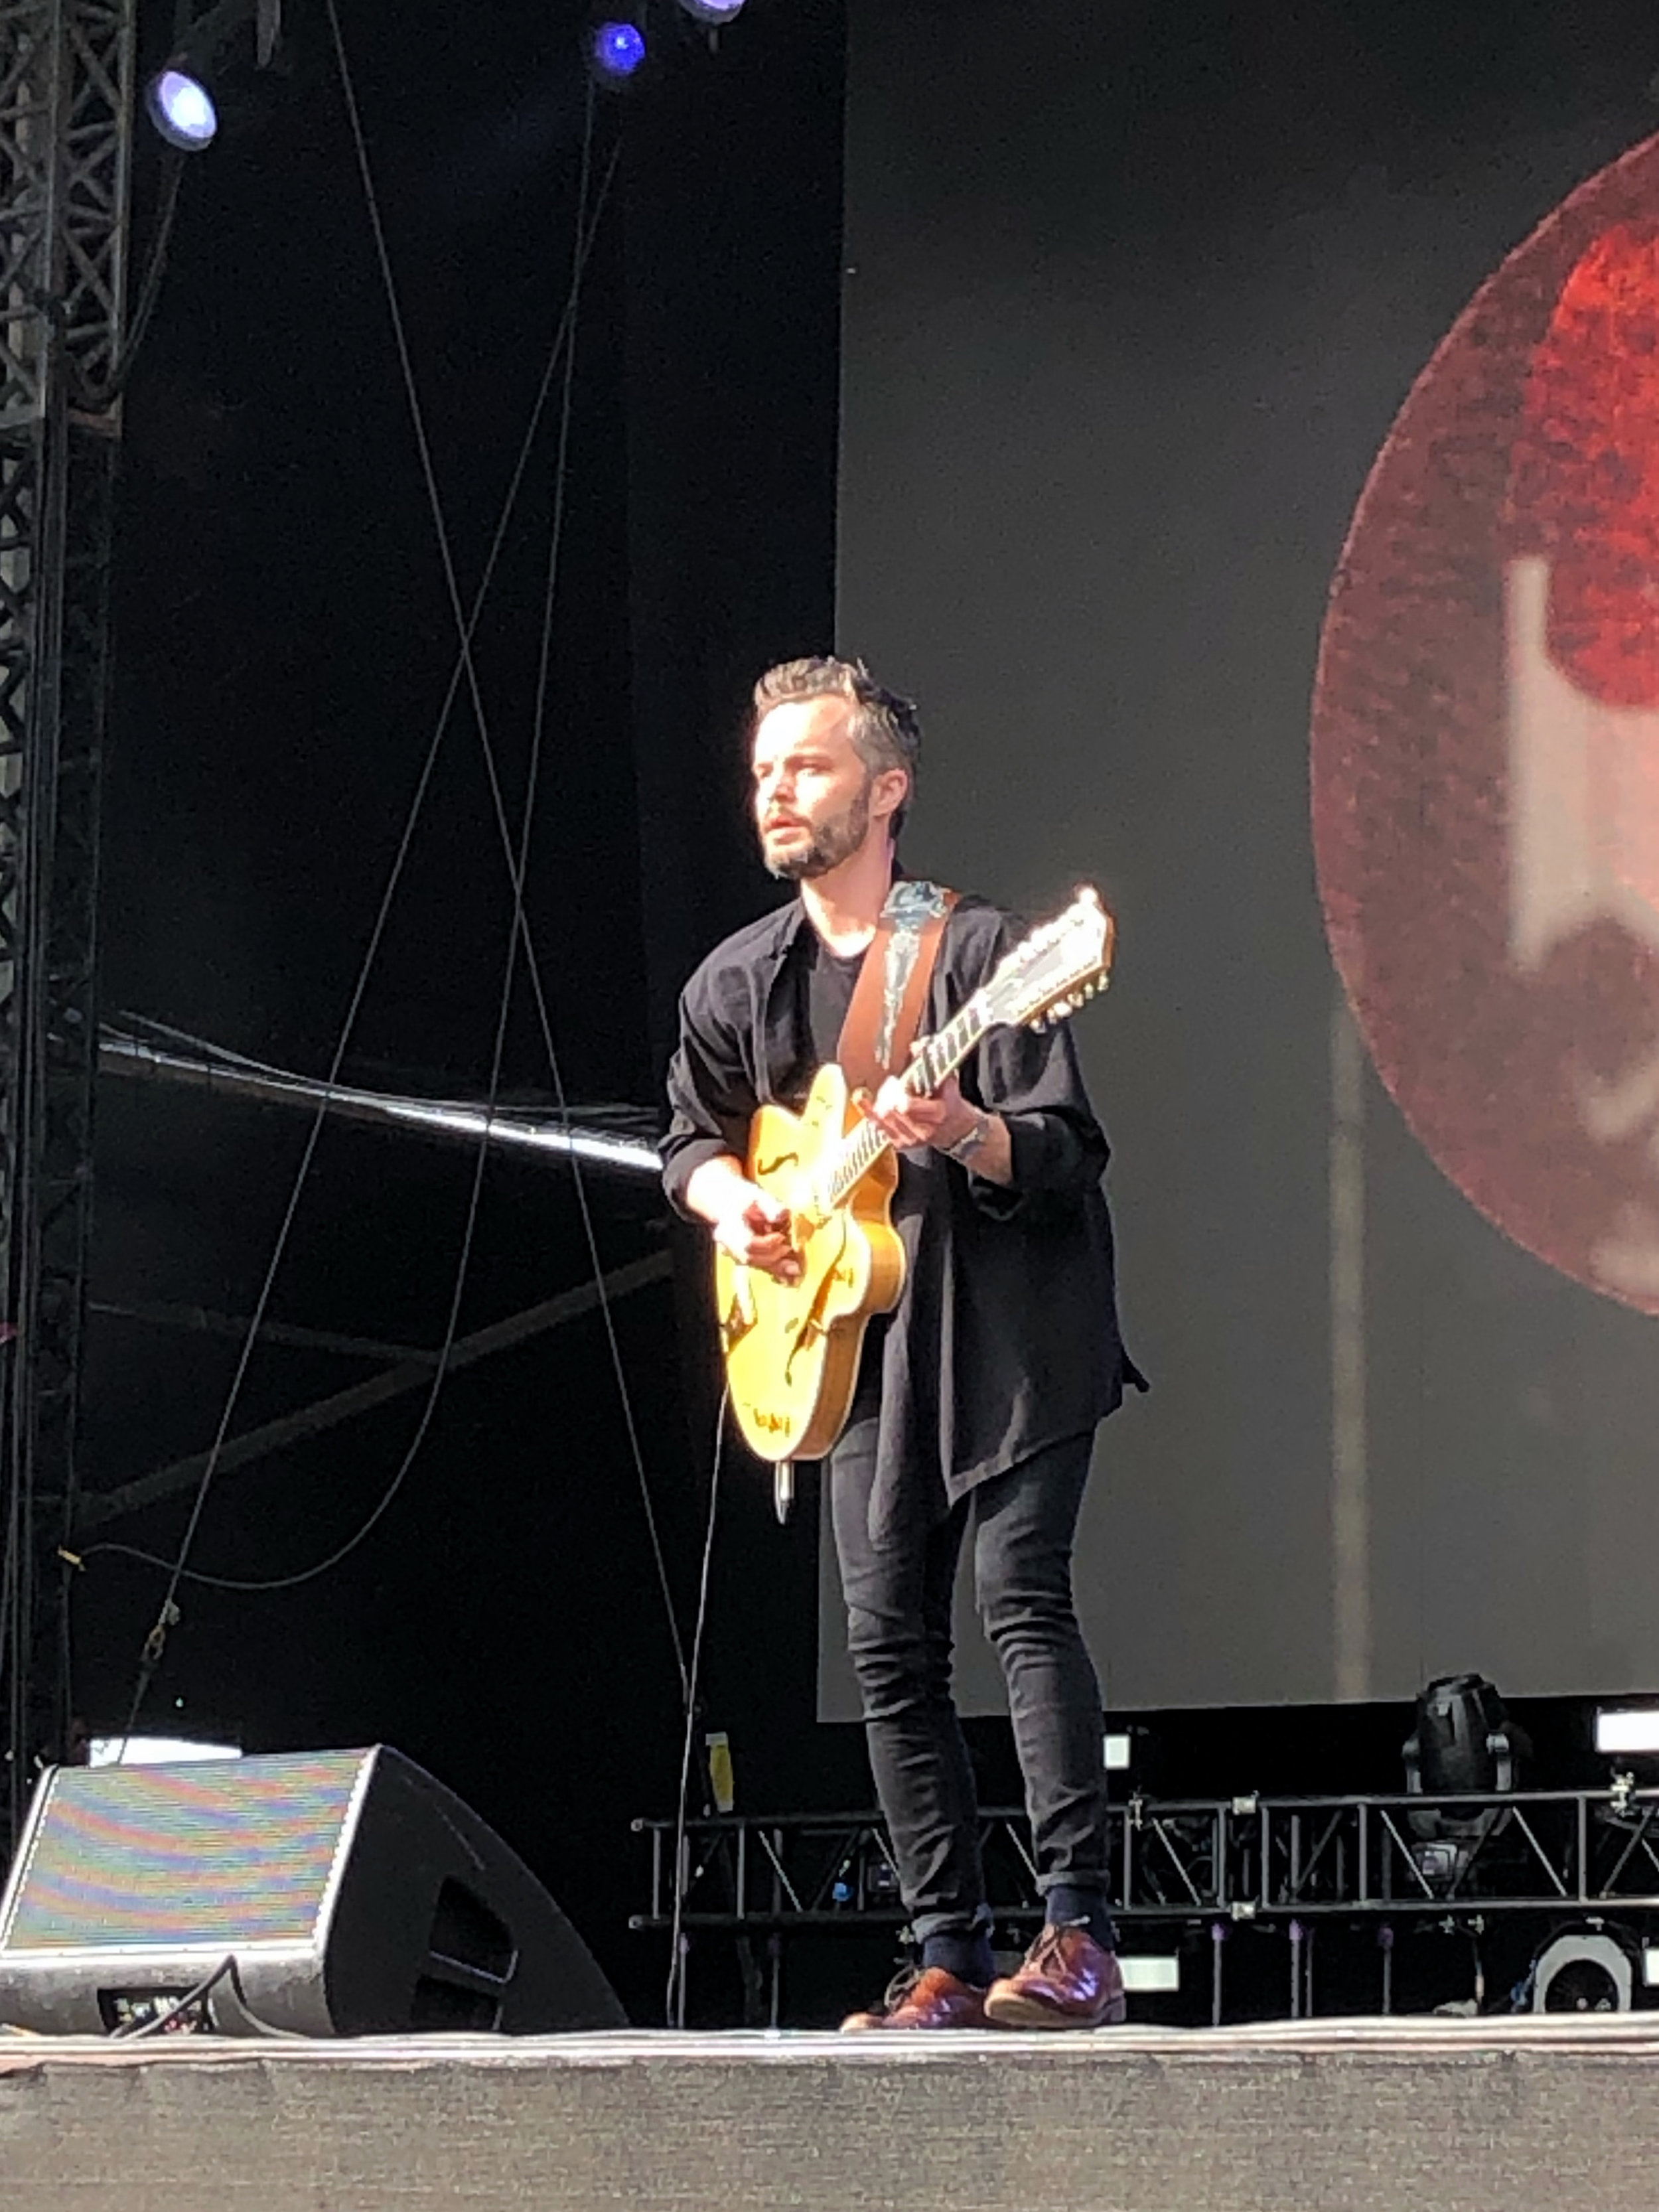 The Tallest Man On Earth, alive on stage at All Points East 2019